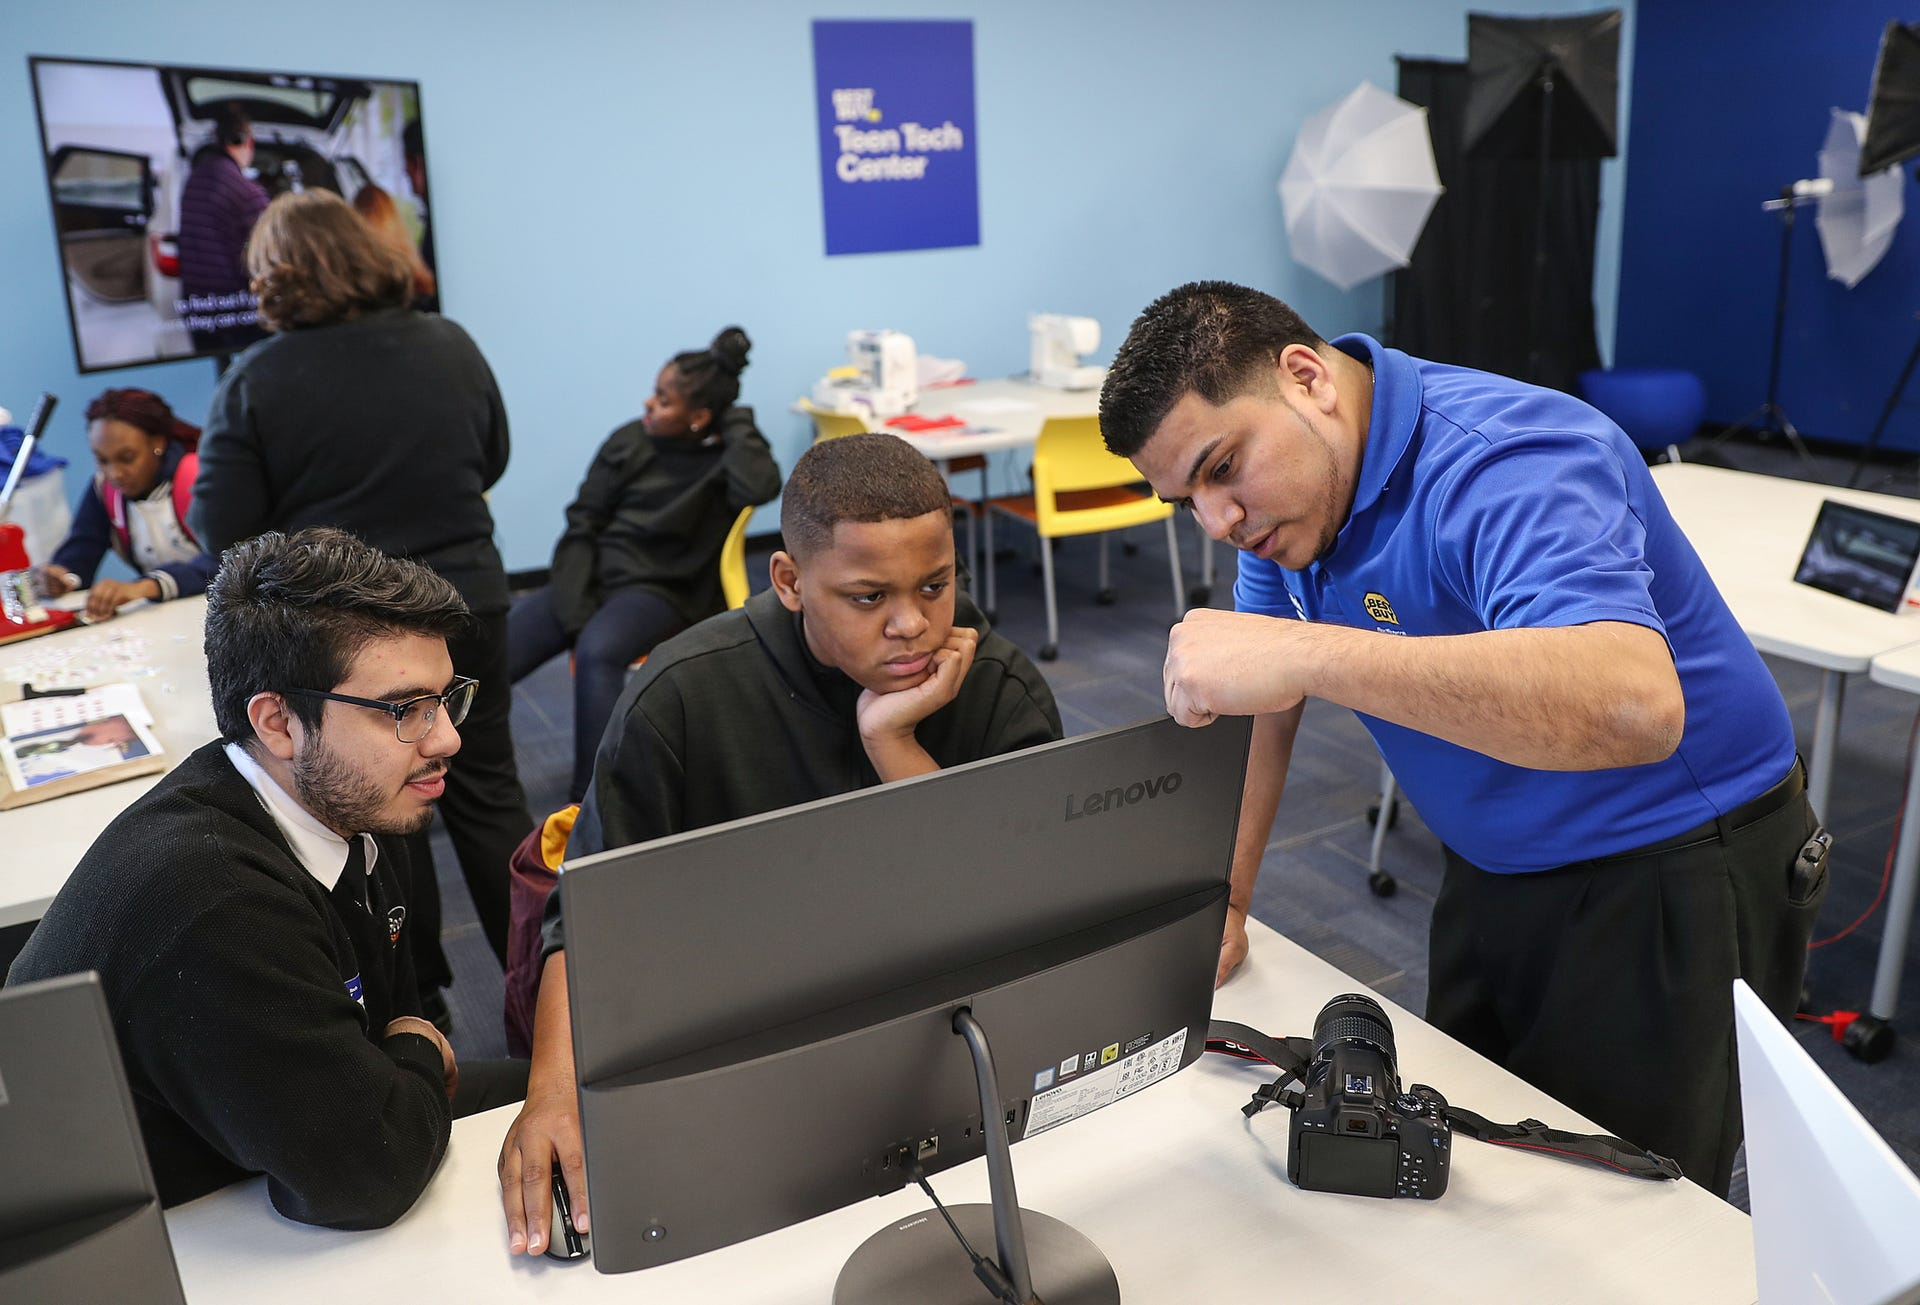 Carlos Bucio, left, and Yass Fernandez, right, teach photoshop skills to  Damon